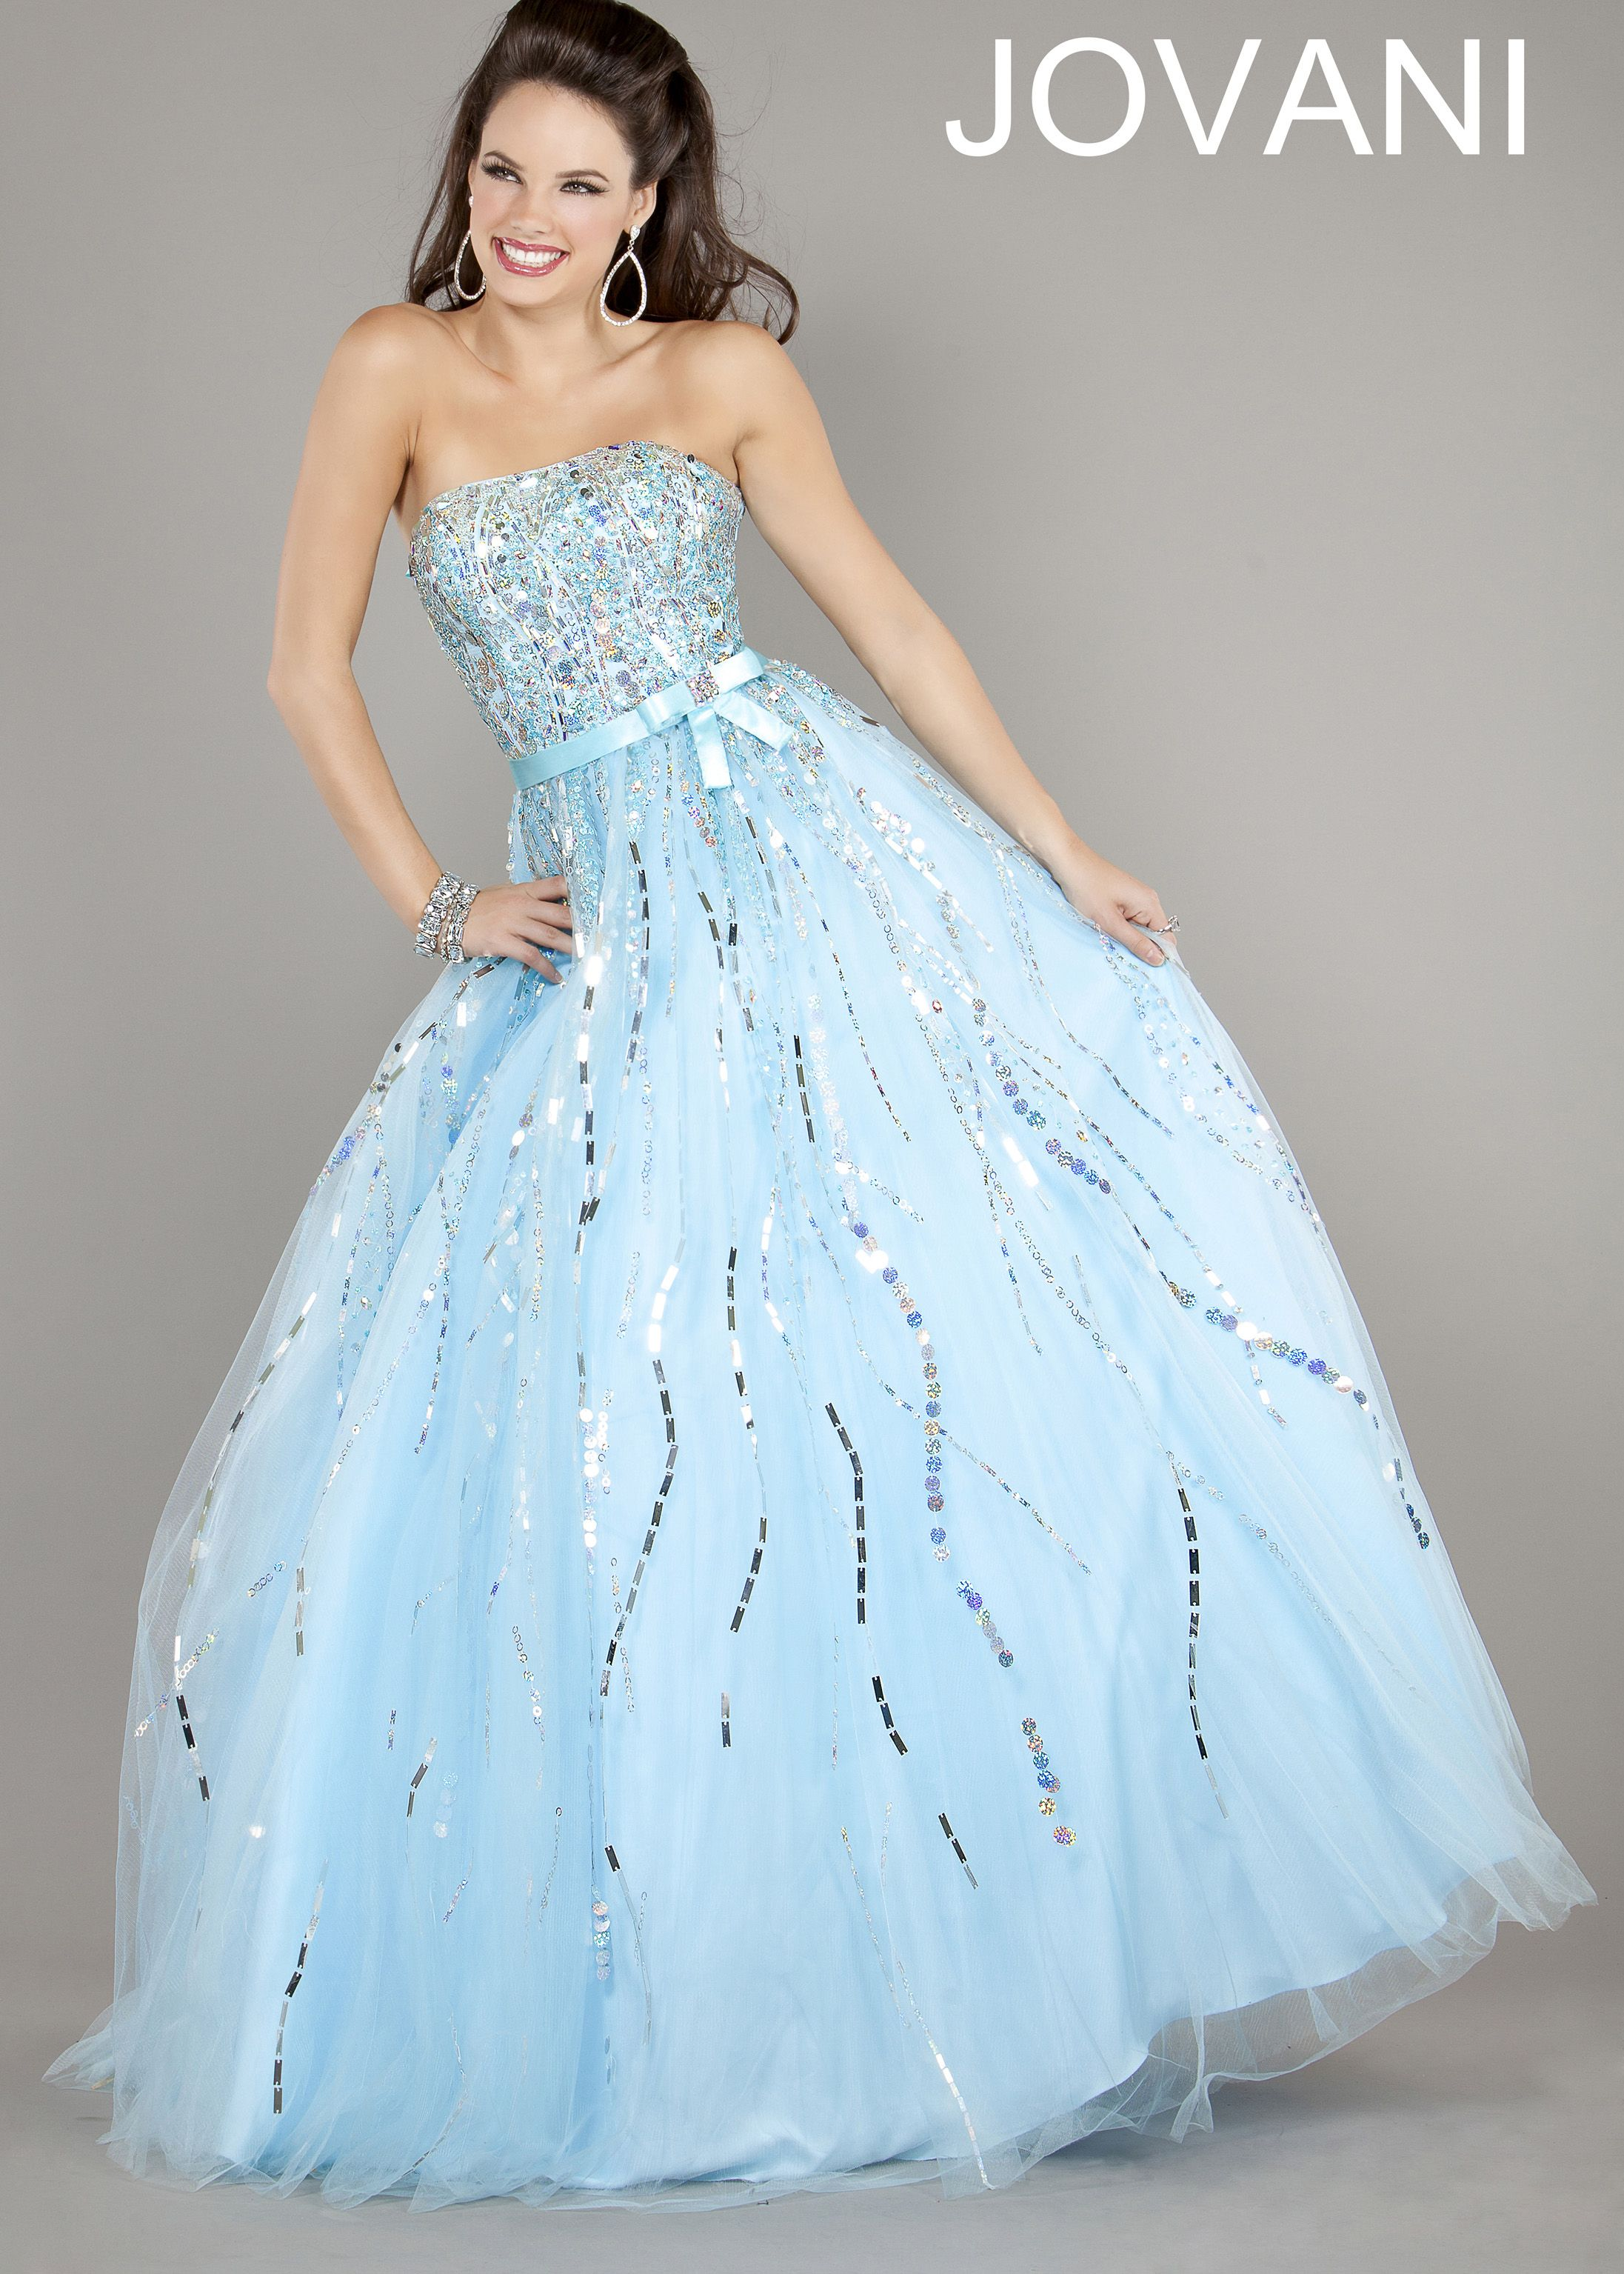 Free shipping for jovani light blue strapless ball gown prom